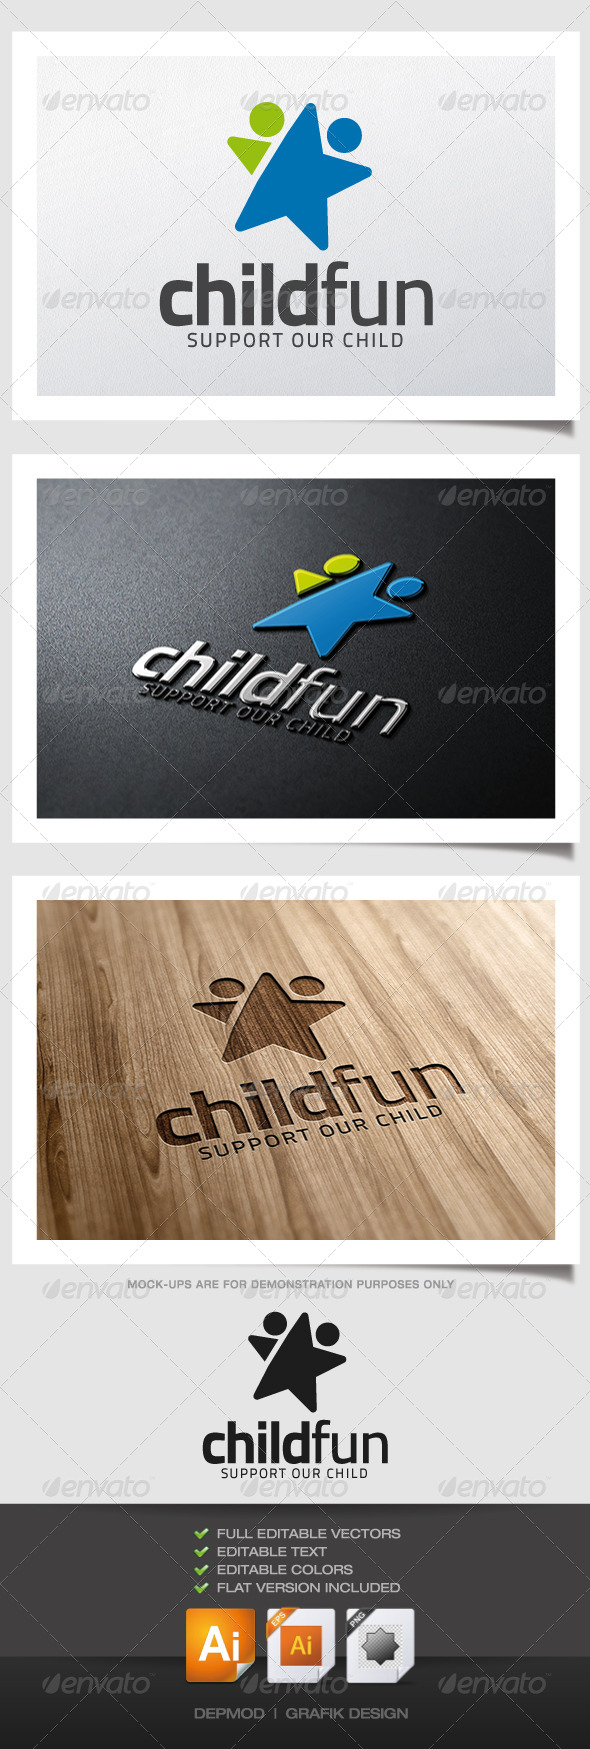 GraphicRiver Child Fun Logo 5060874